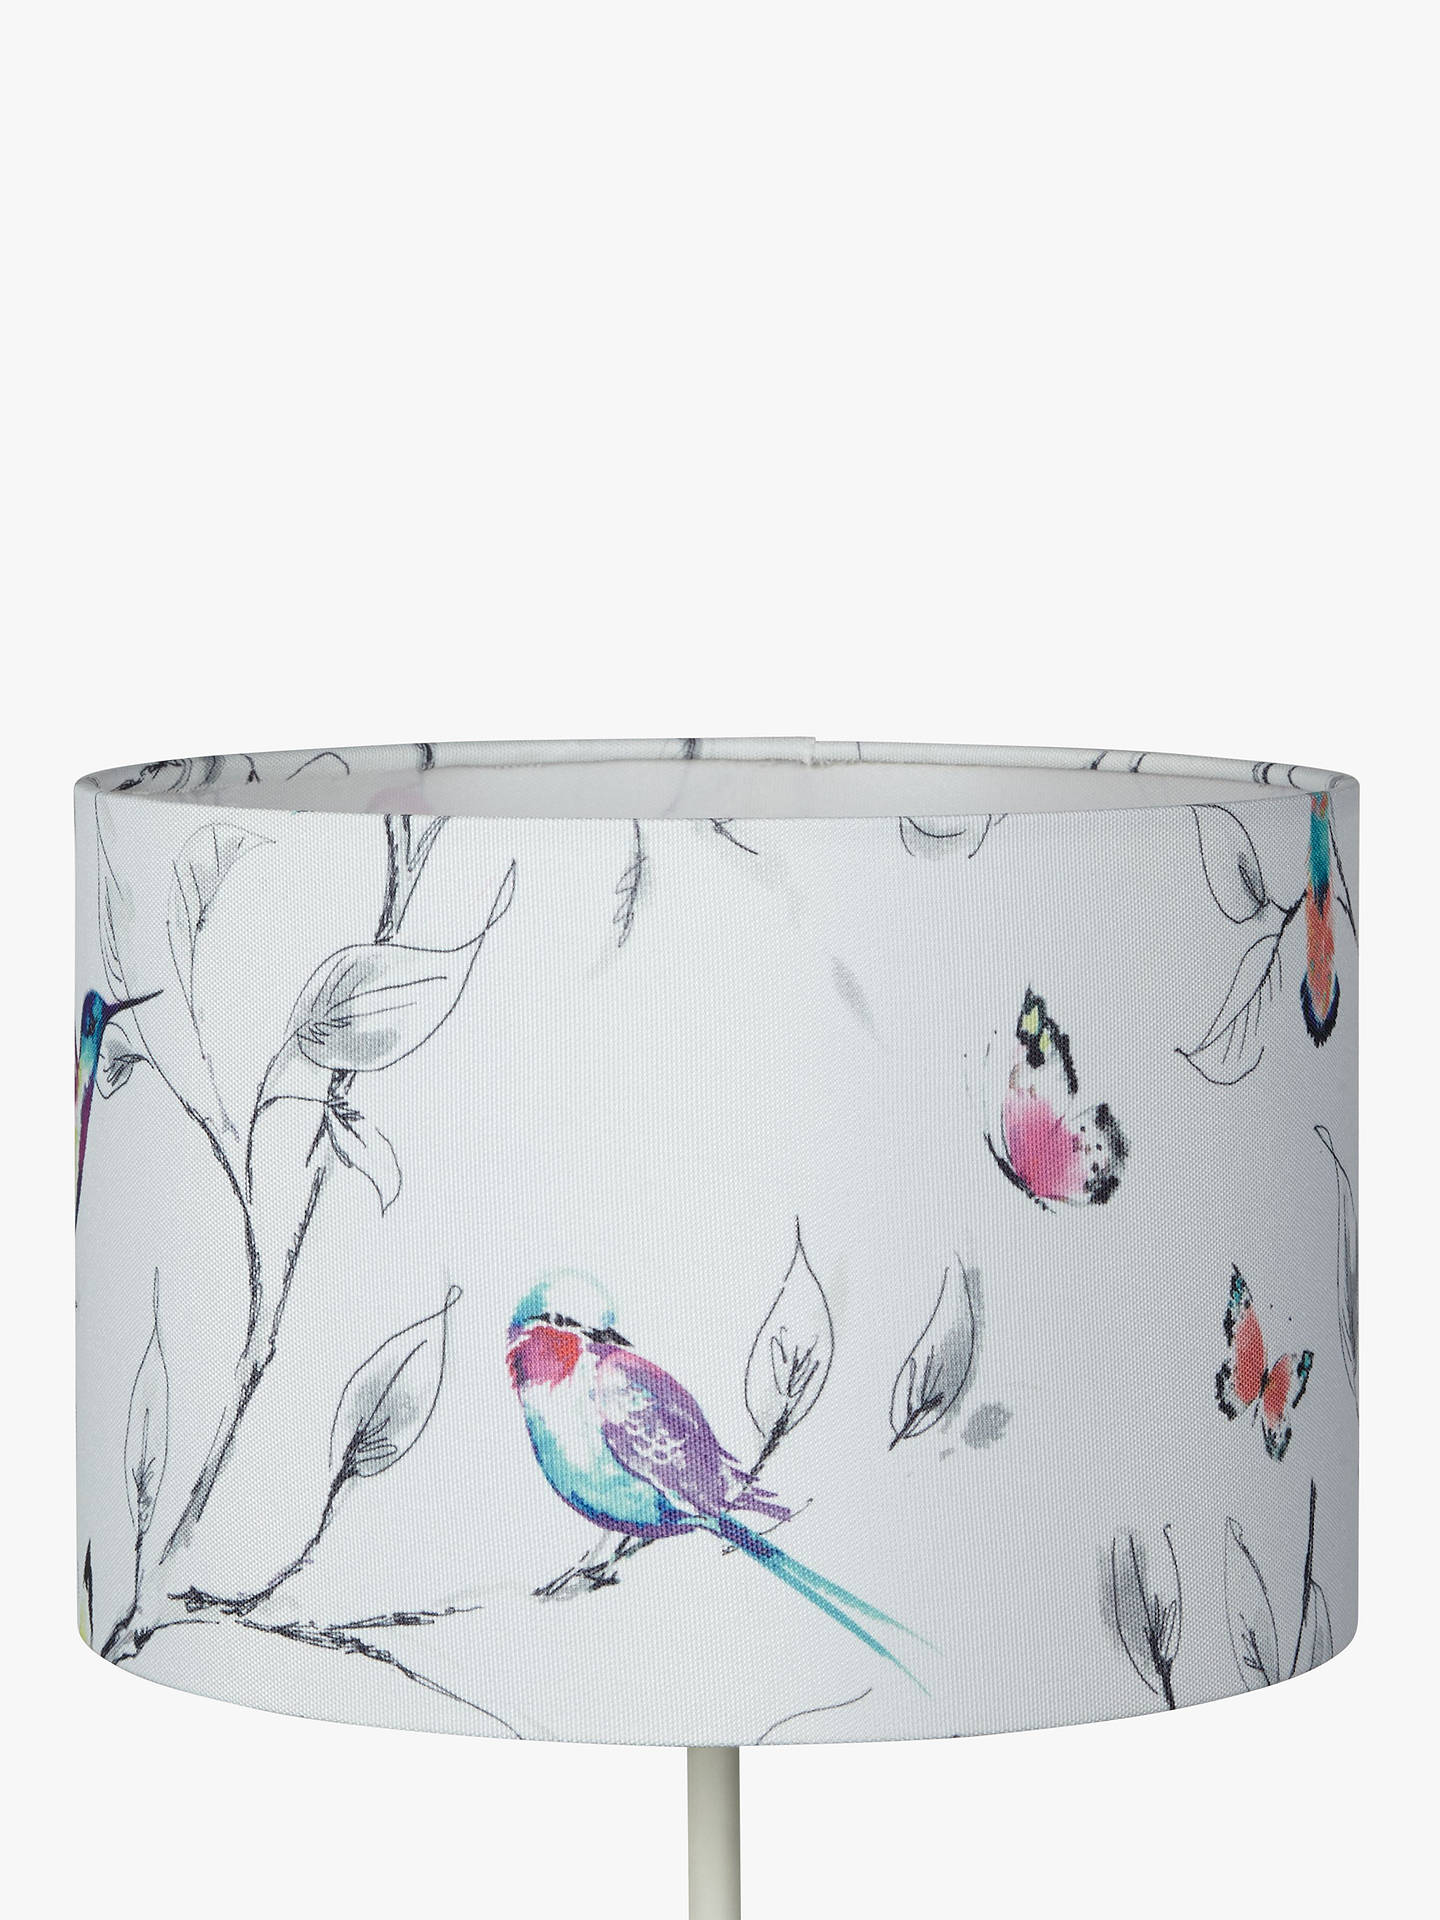 BuyJohn Lewis & Partners Hummingbird Lampshade, Multi, Dia.20cm Online at johnlewis.com